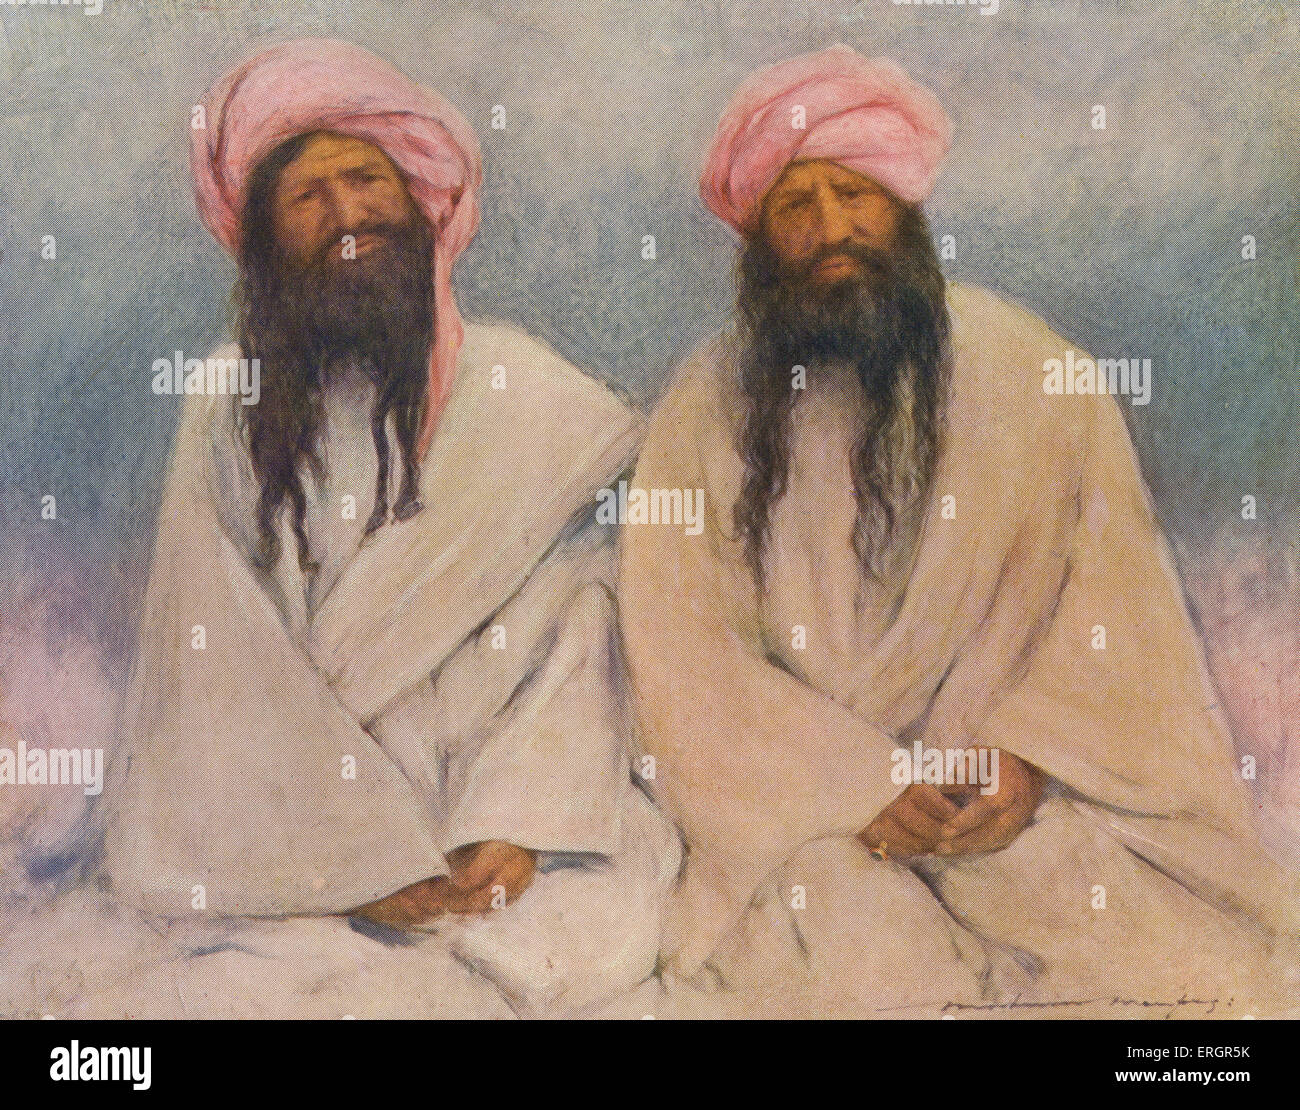 Portrait of two Baluchi chiefs, members of a tribal society native to the Balochistan region of the Indian subcontinent - Stock Image